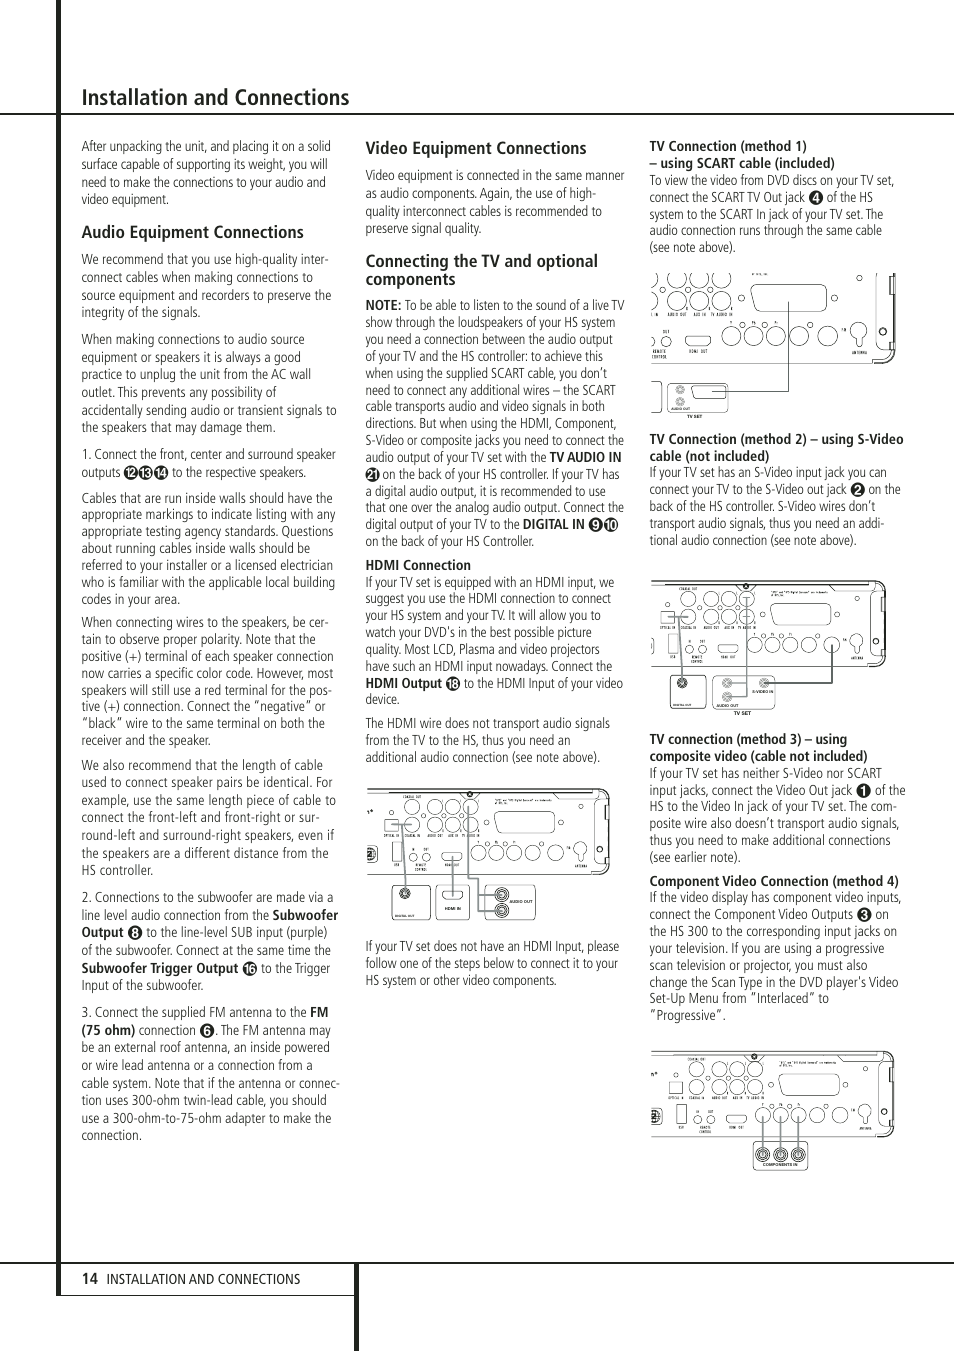 Installation and connections, Audio equipment connections